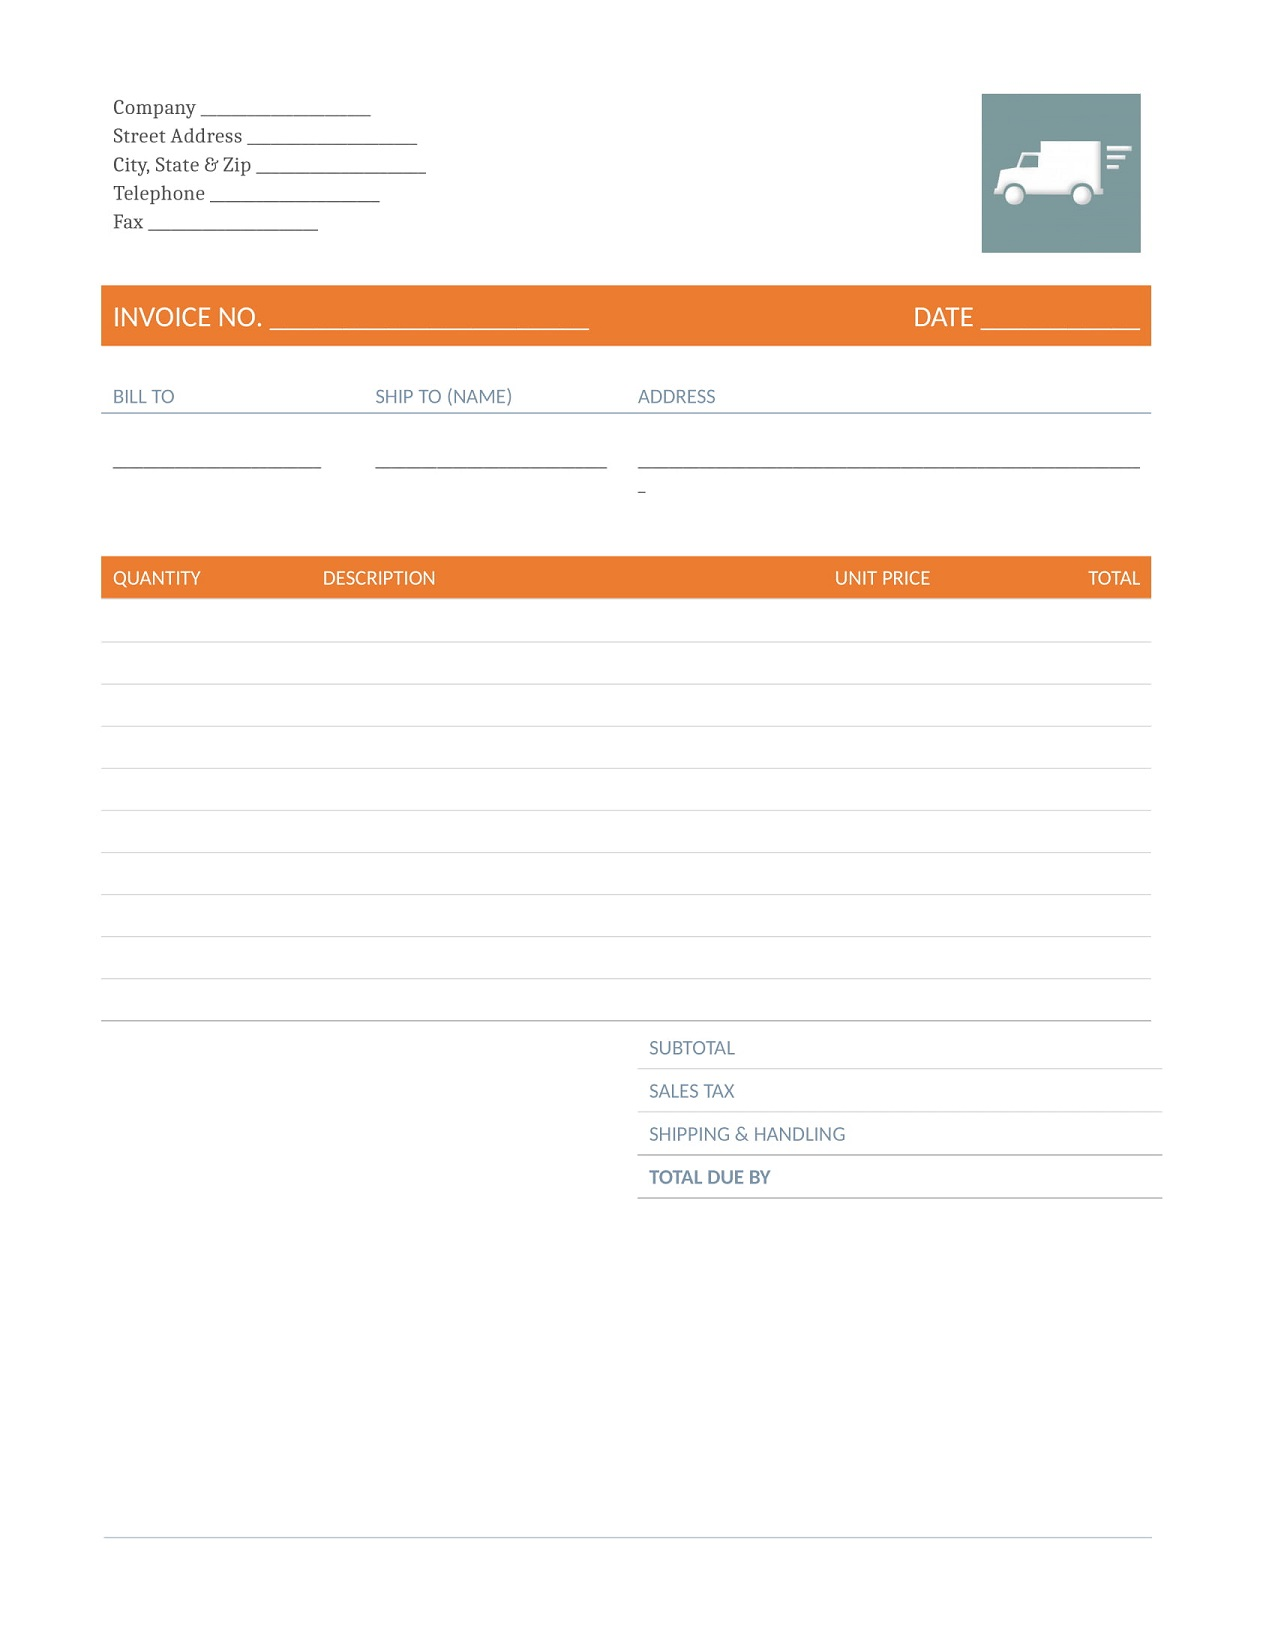 Freight Invoice Excel Template Free